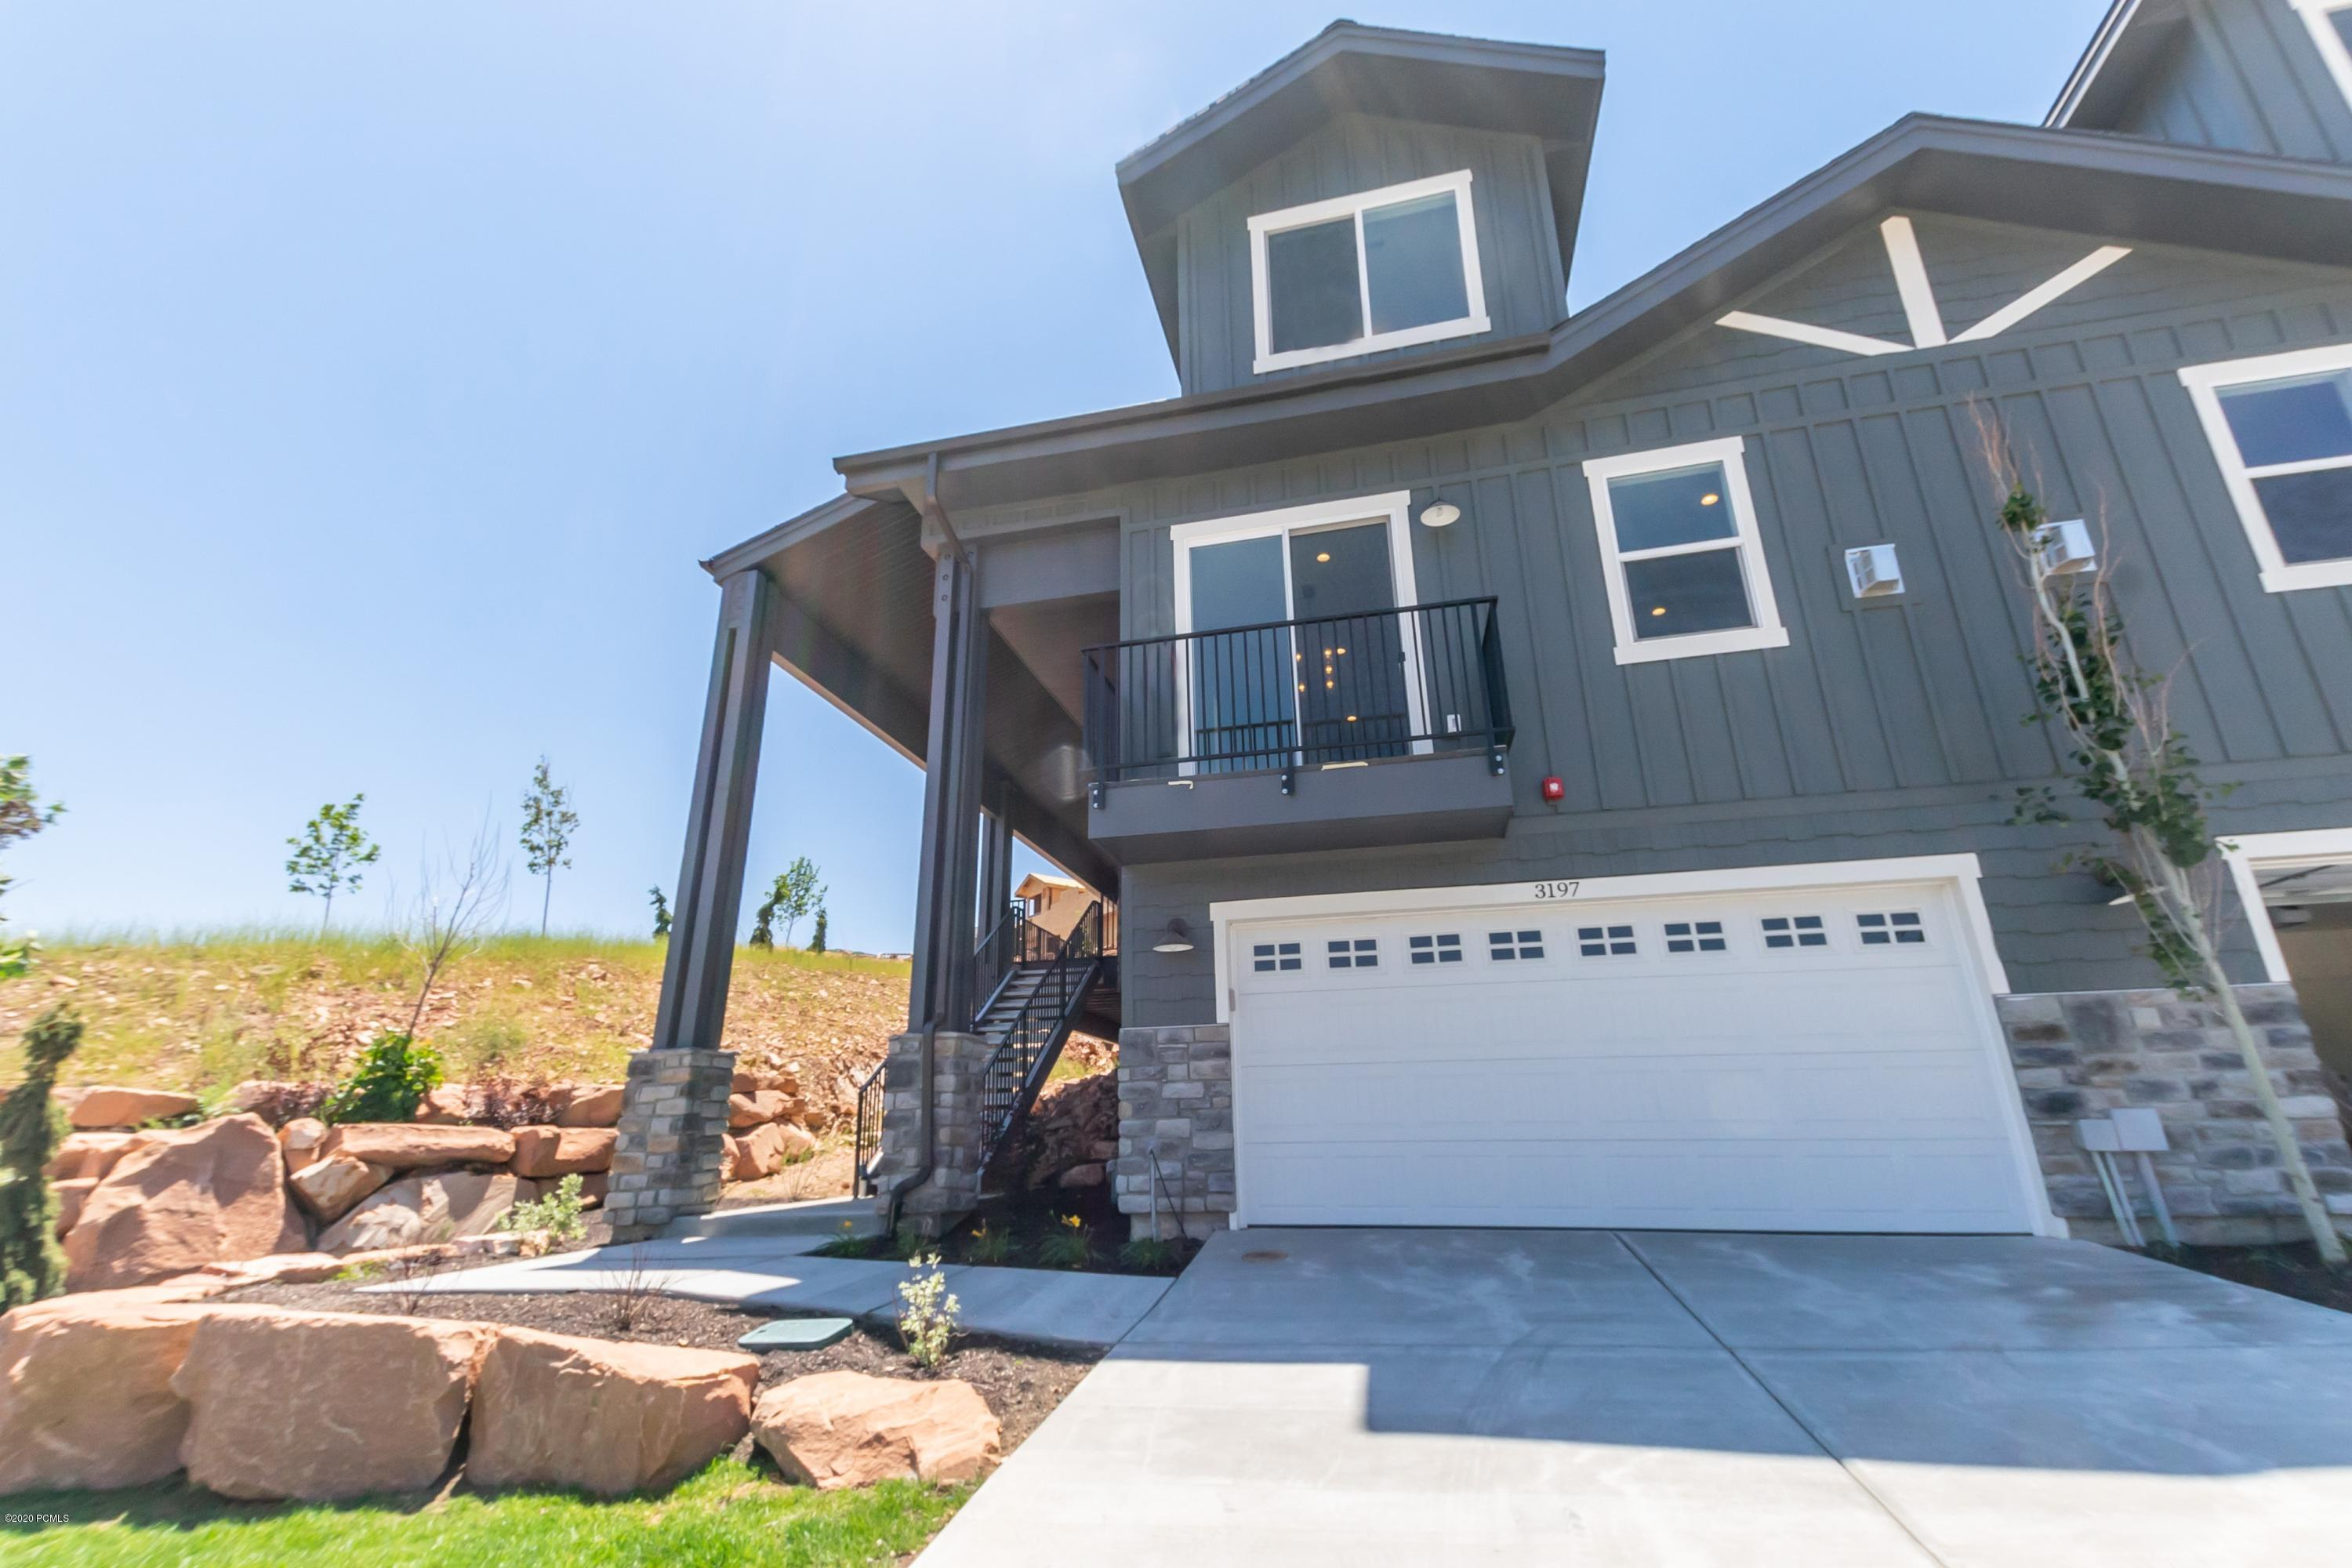 3365 Santa Fe Road, Park City, Utah 84098, 3 Bedrooms Bedrooms, ,3 BathroomsBathrooms,Condominium,For Sale,Santa Fe,12003567